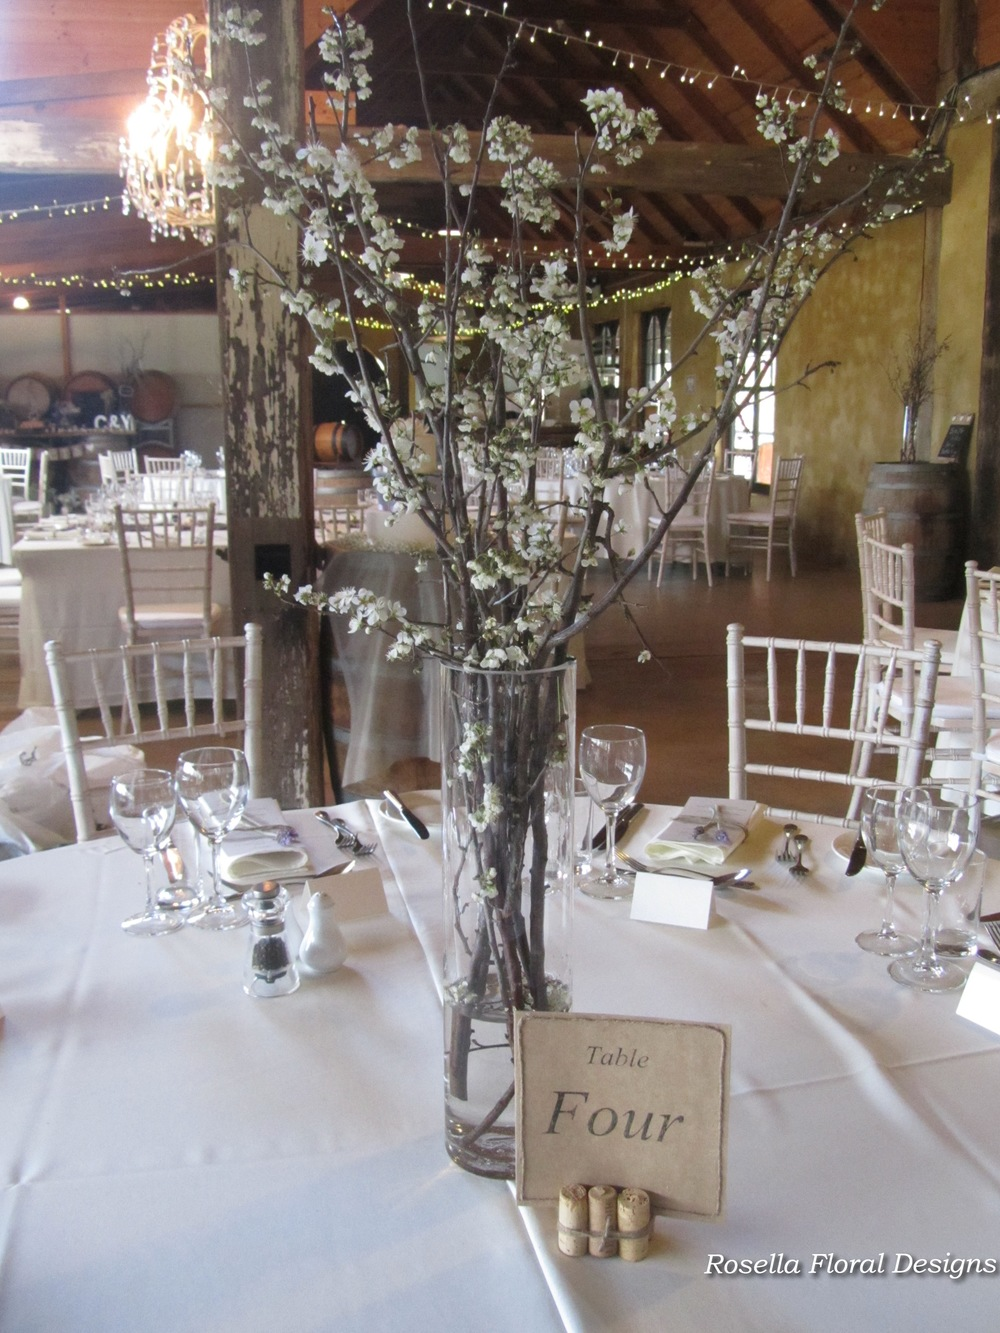 Sticks cherry blossom table centerpiece long vase.jpg